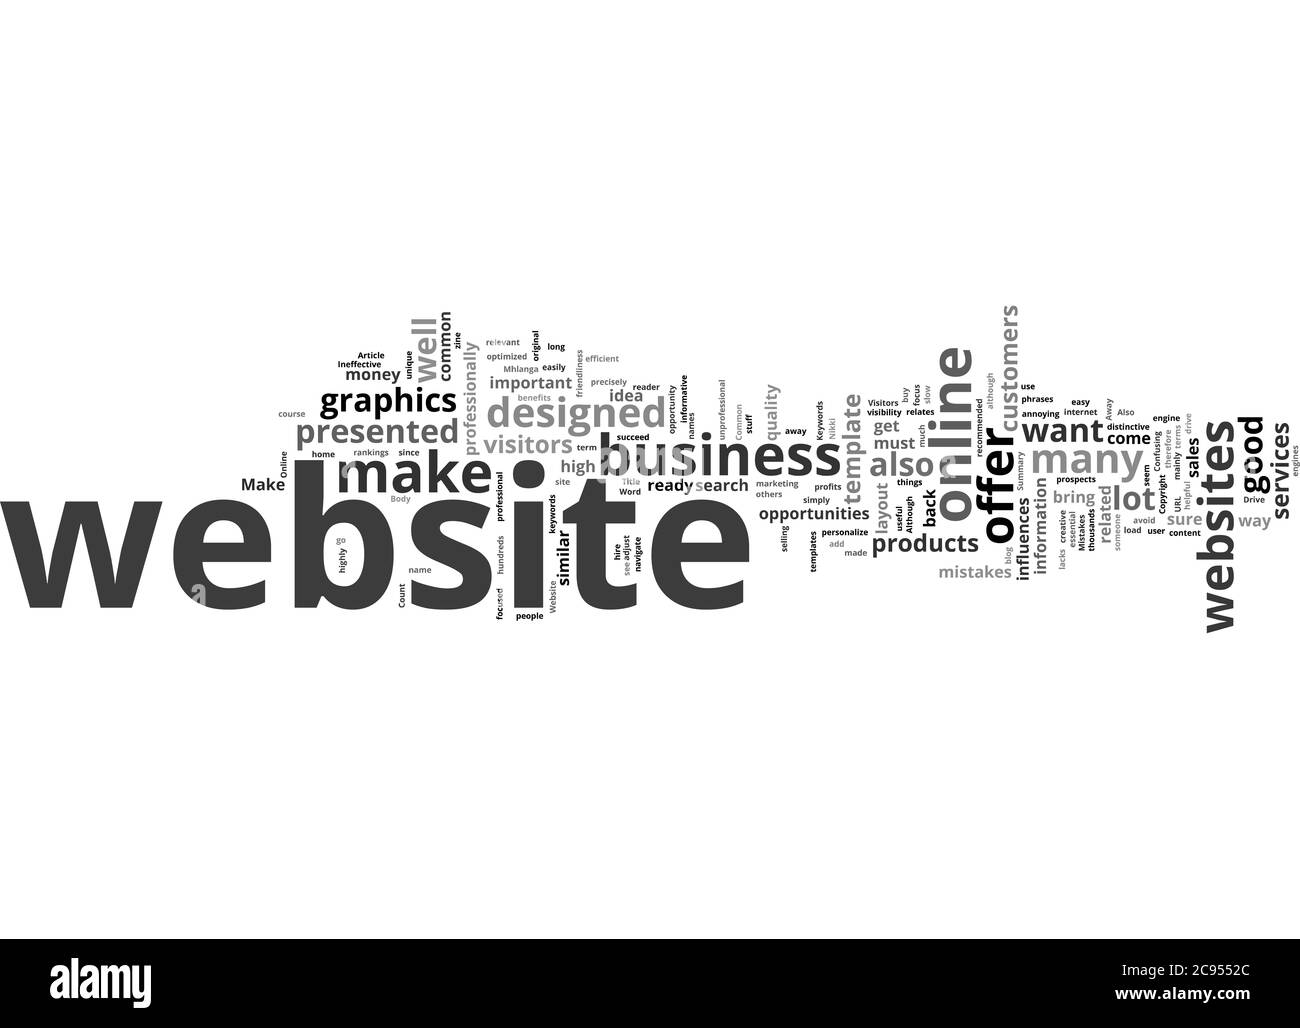 Word Cloud Summary of Common Mistakes That Drive Visitors Away From a Website Article Stock Photo